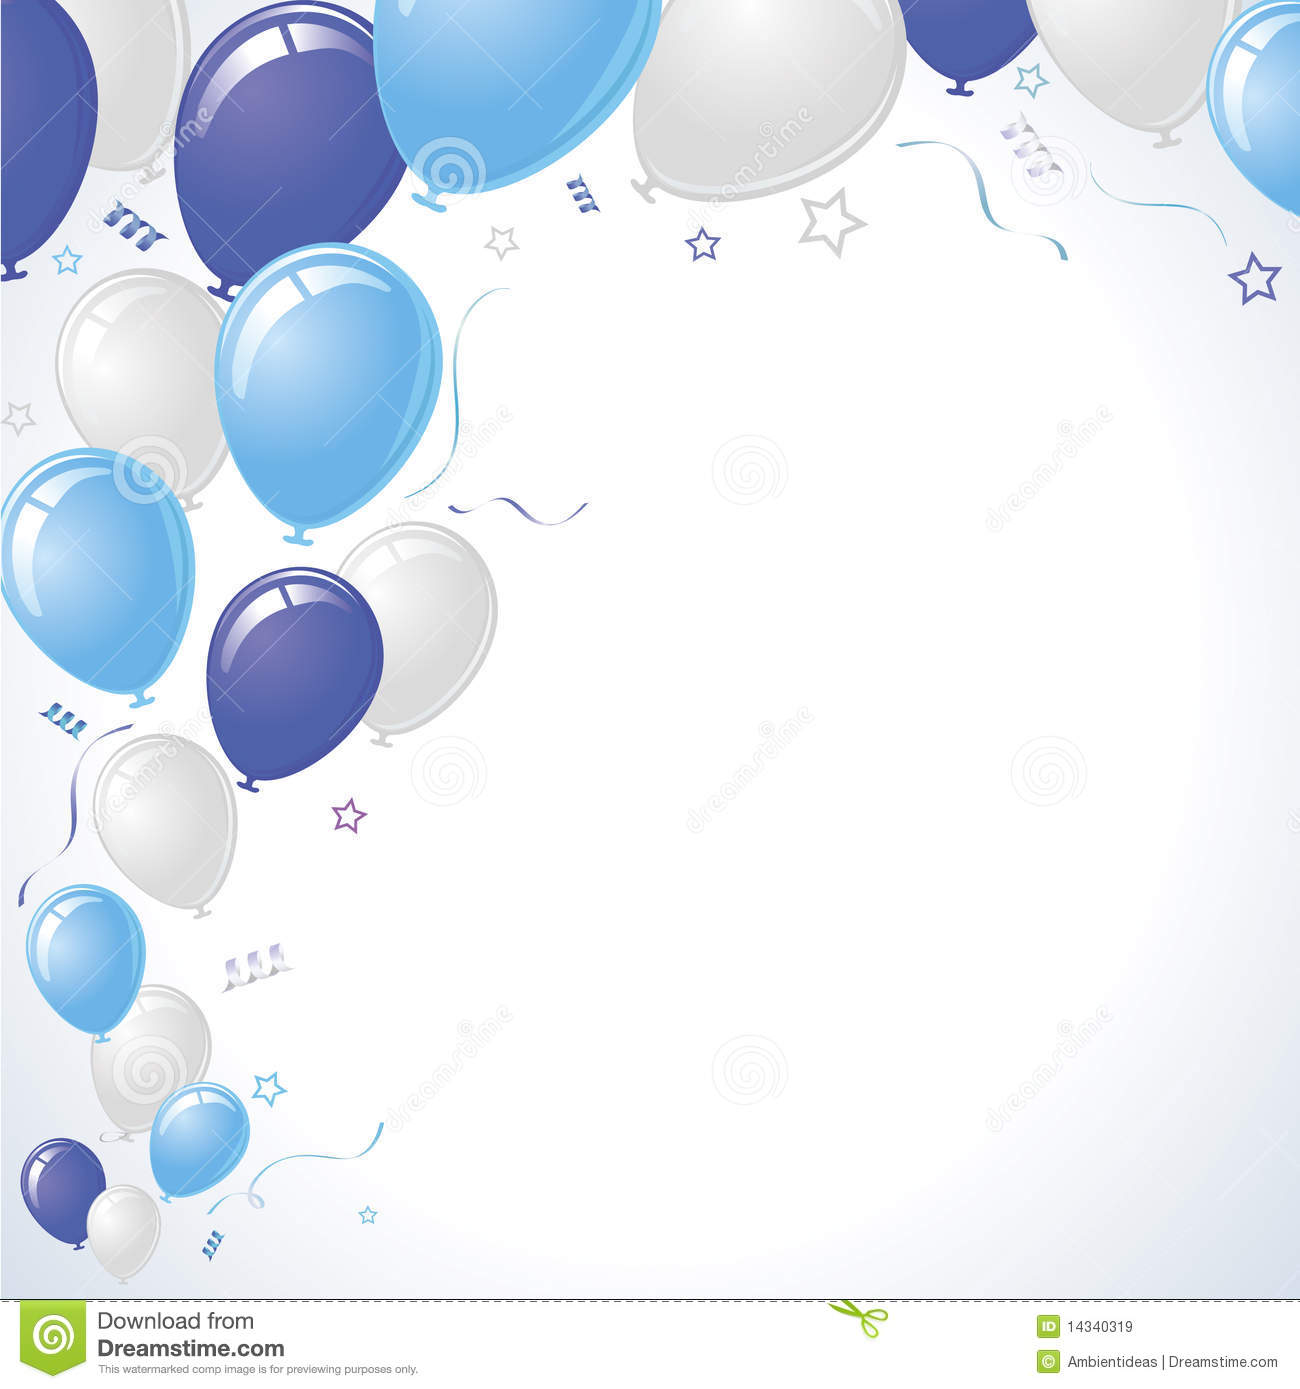 Blue And Teal Party Balloons Rising Royalty Free Stock